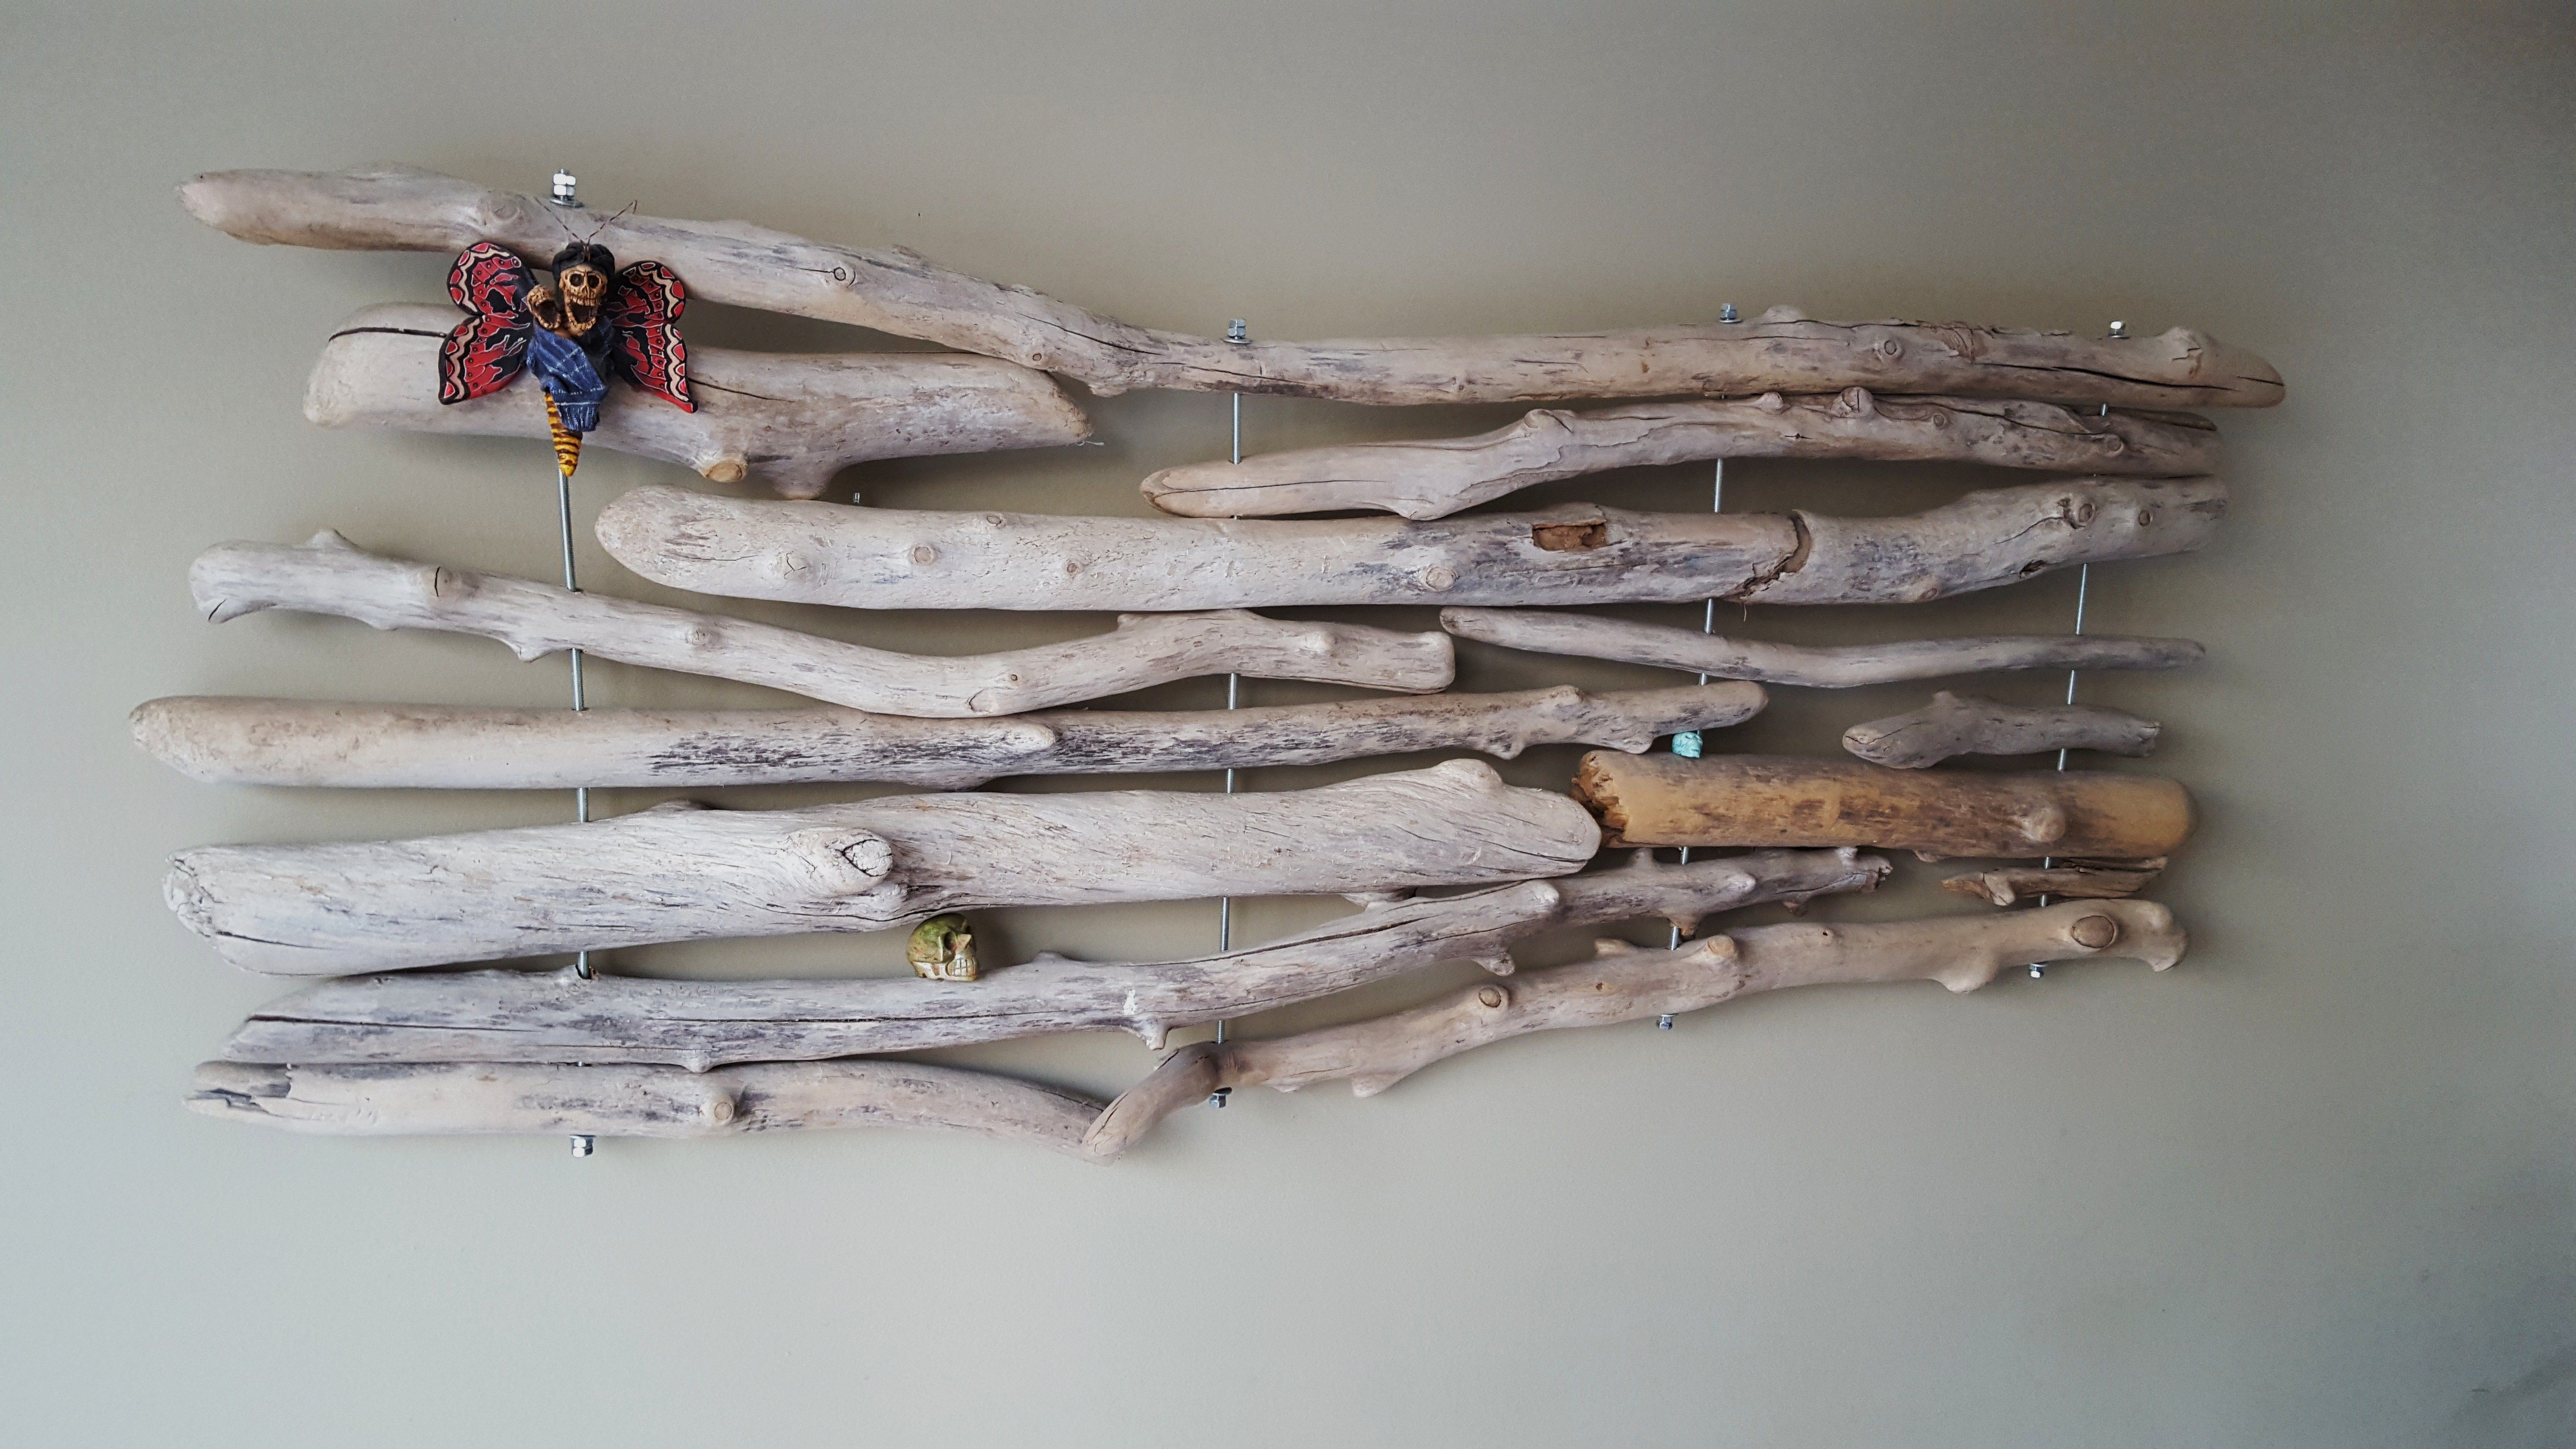 This is a wall decoration that I made from driftwood.